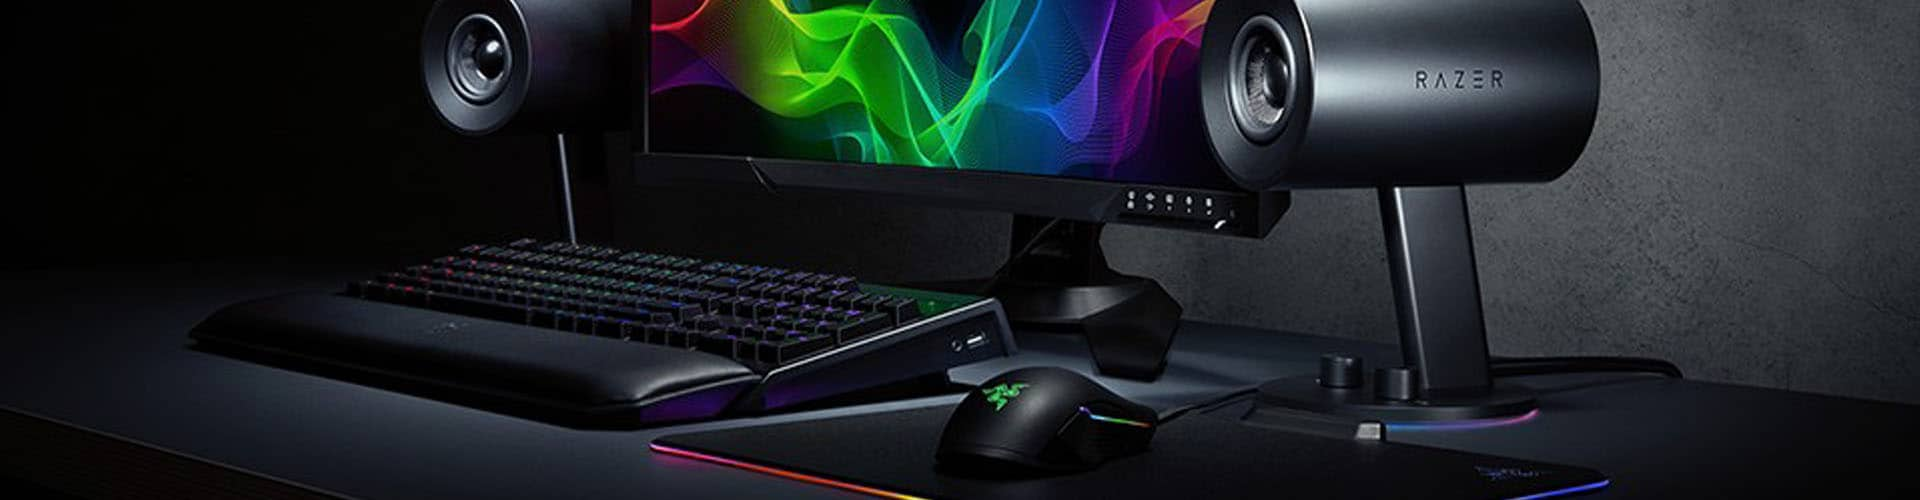 Best Gaming Mouse Under 50 USD – The Ultimate Mouse Guide